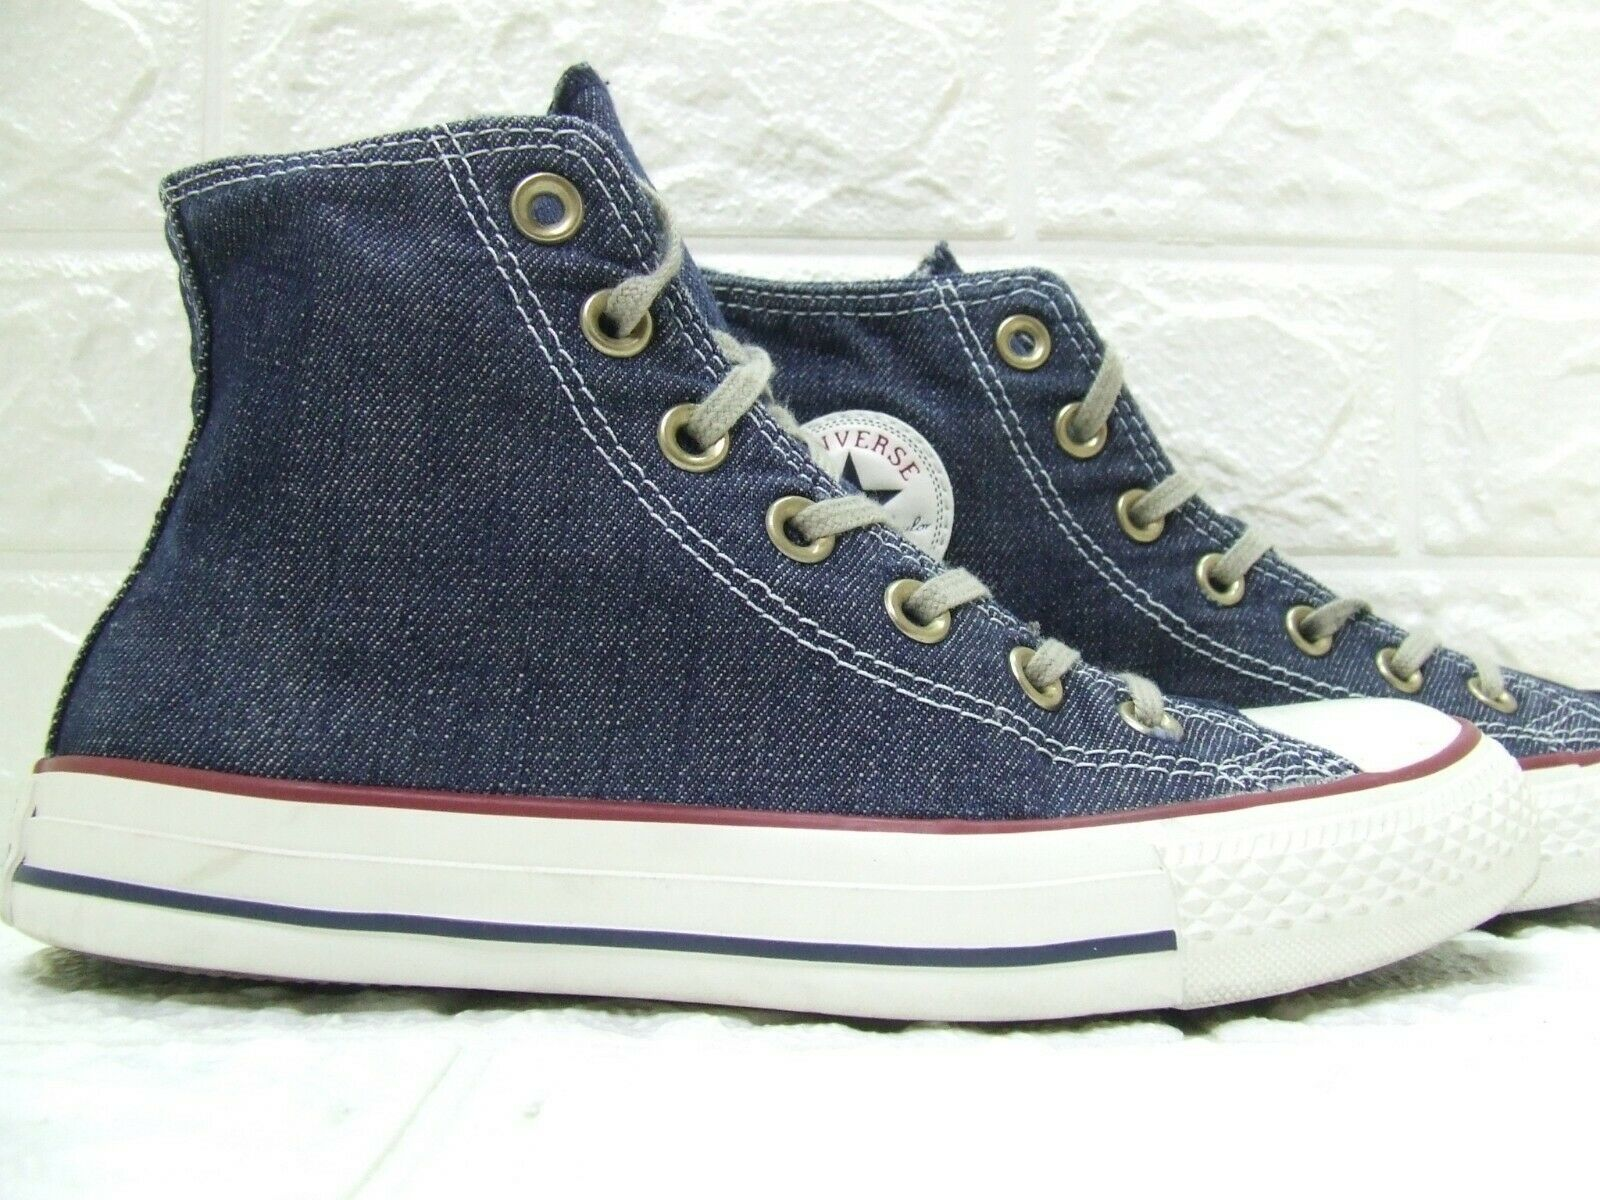 shoes Man Woman Vintage Converse all Star Size 4 - 36,5 (001)